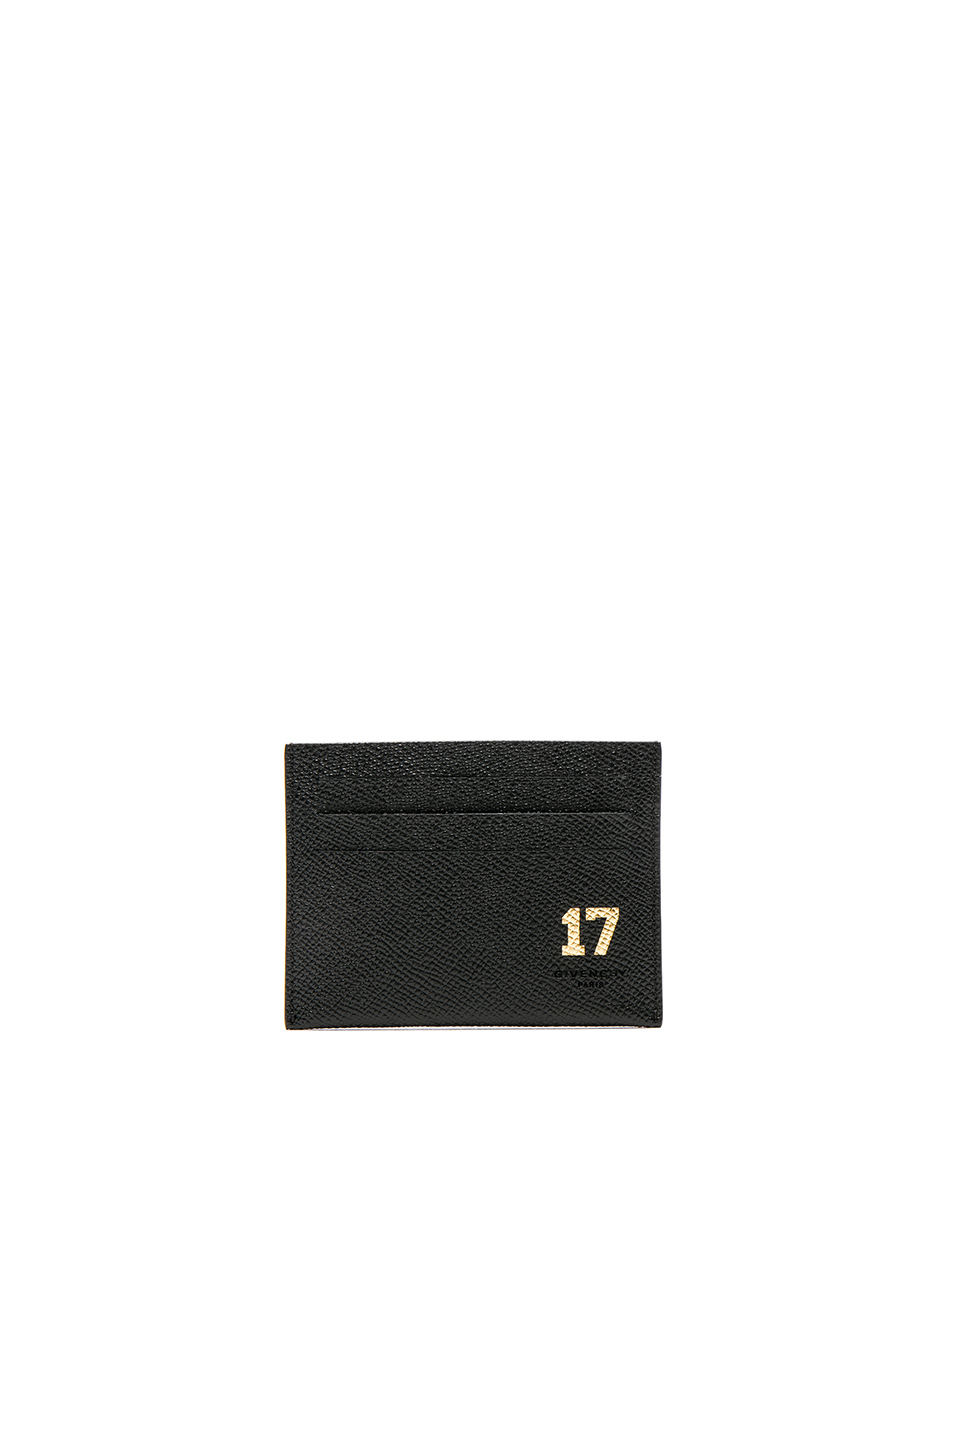 Givenchy 17 Embossed Card Holder in Black